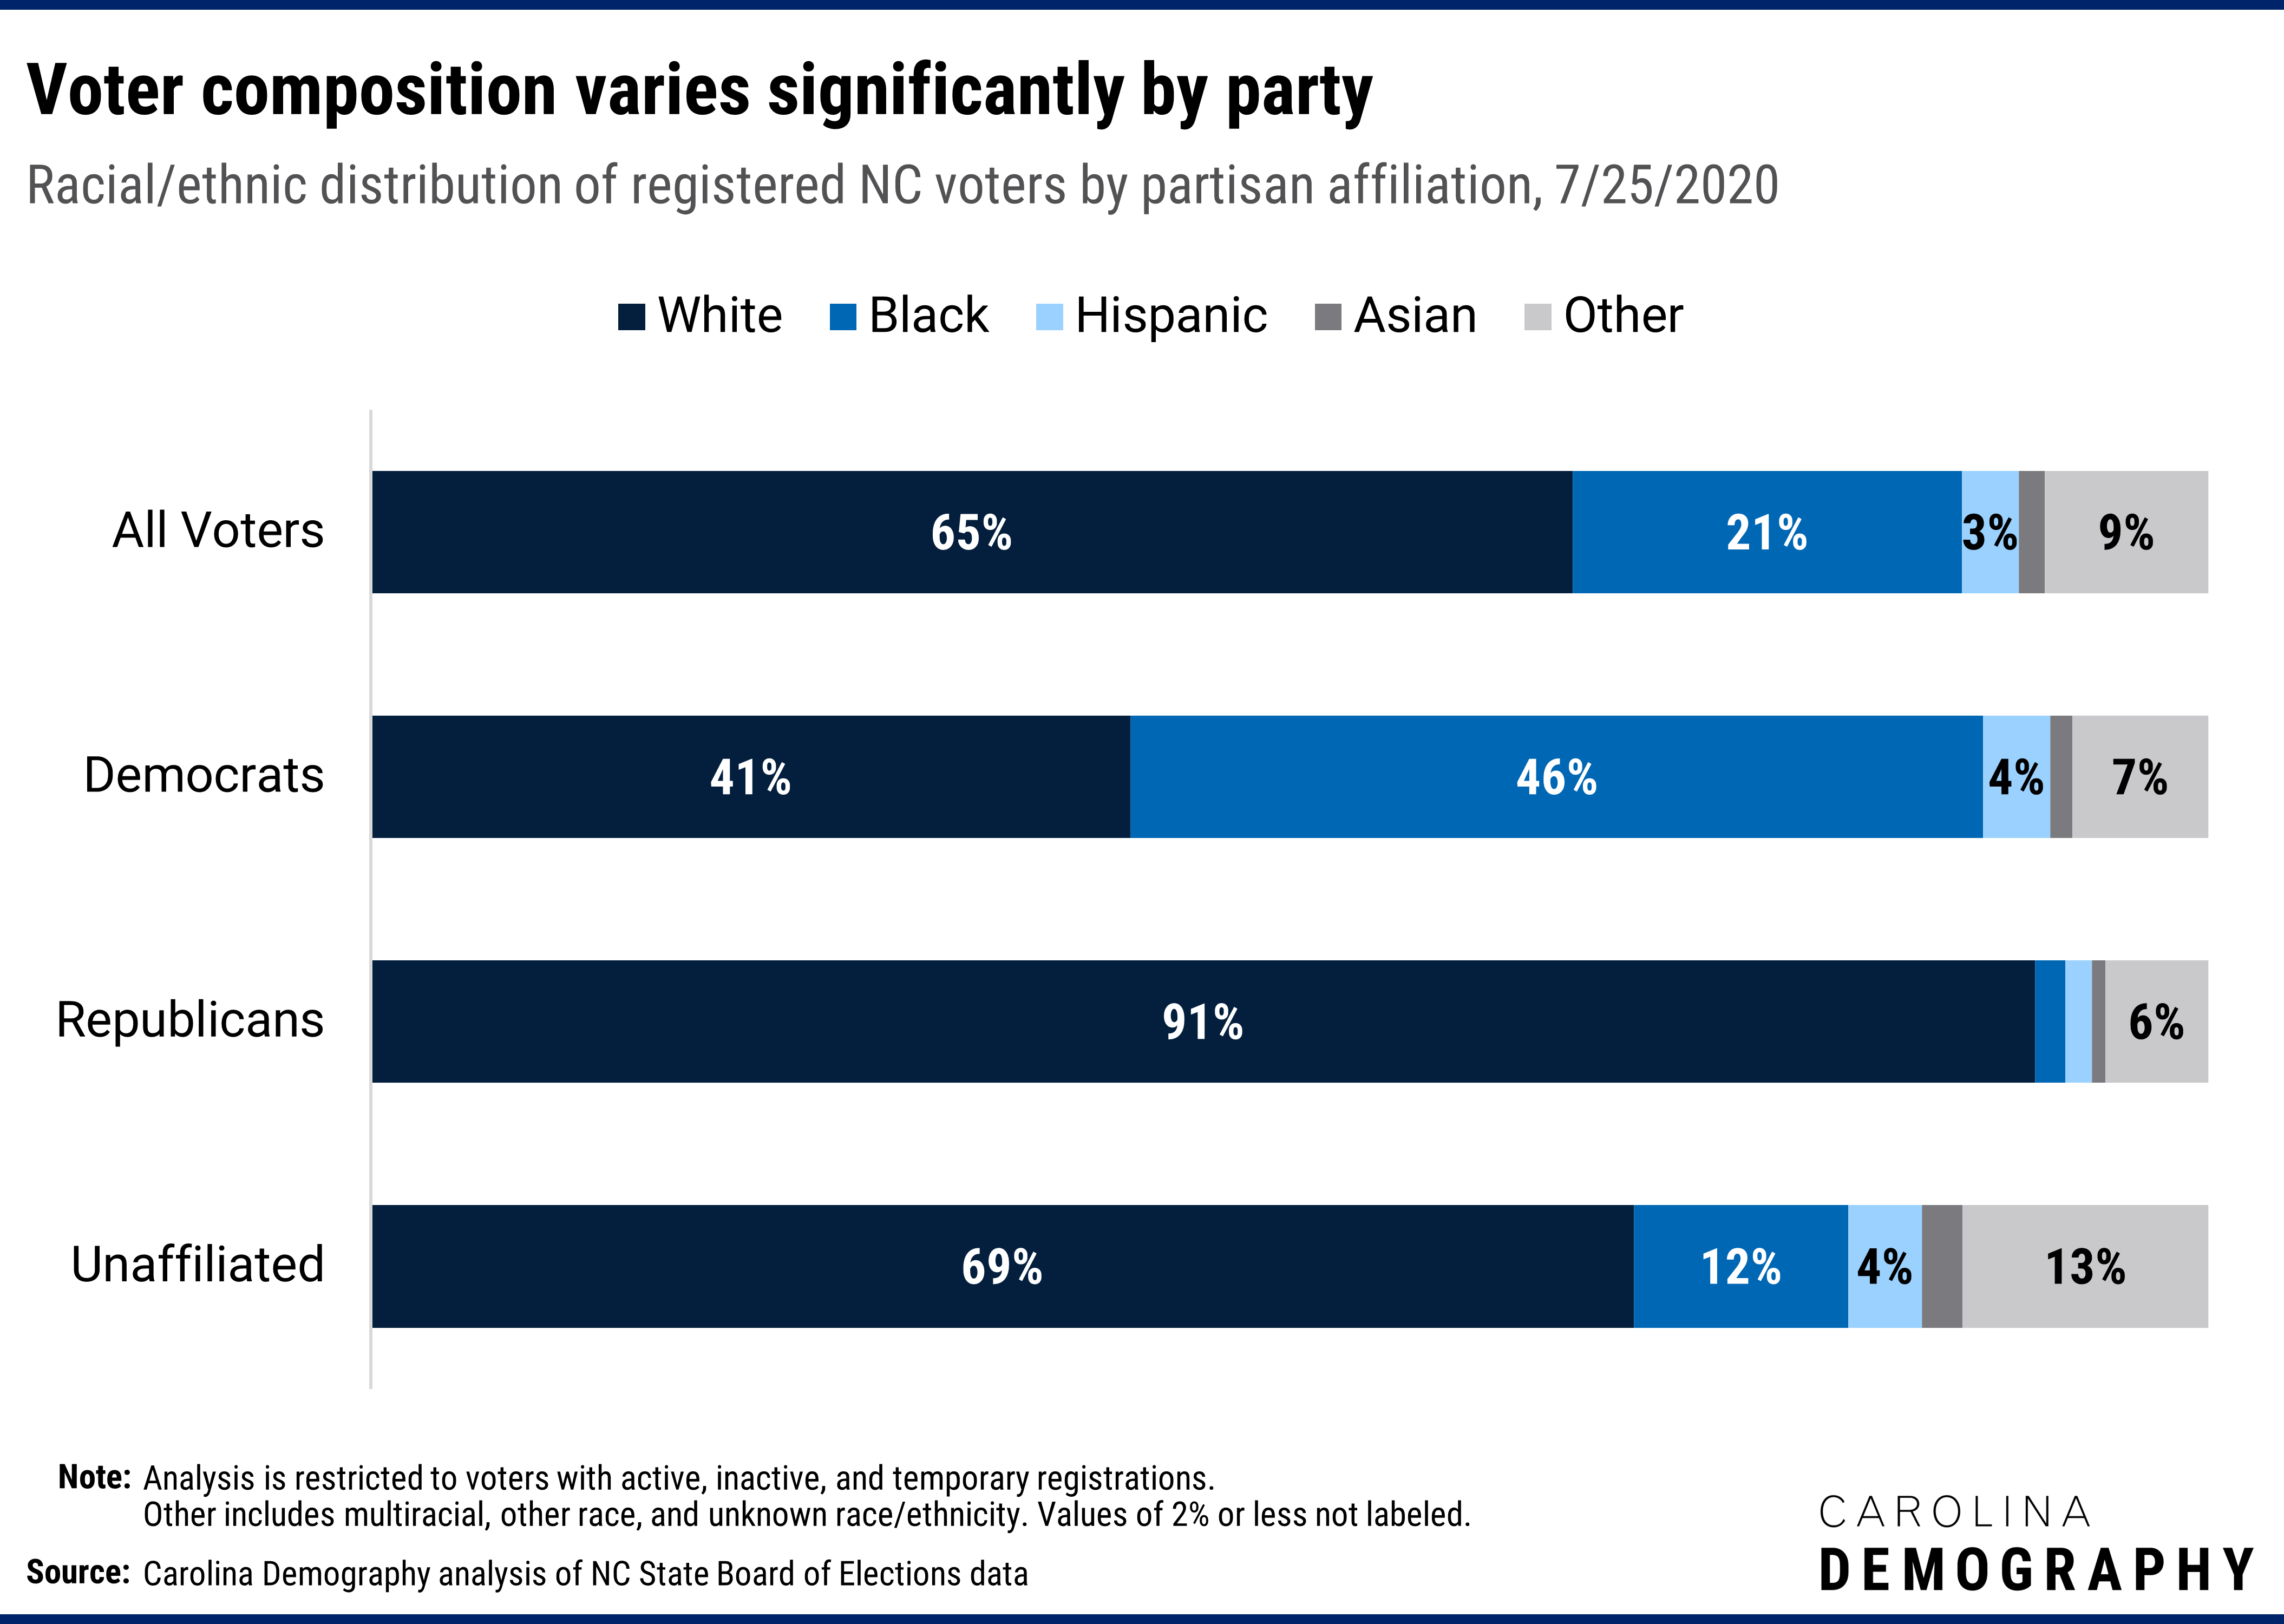 Voter composition varies significantly by party Racial/ethnic distribution of registered NC voters by partisan affiliation, 7/25/2020. Democratic voters are the only party where white voters are a minority of registered voters: 43% of registered voters identify as white. Black voters comprise the largest share of registered Democrats (45%).